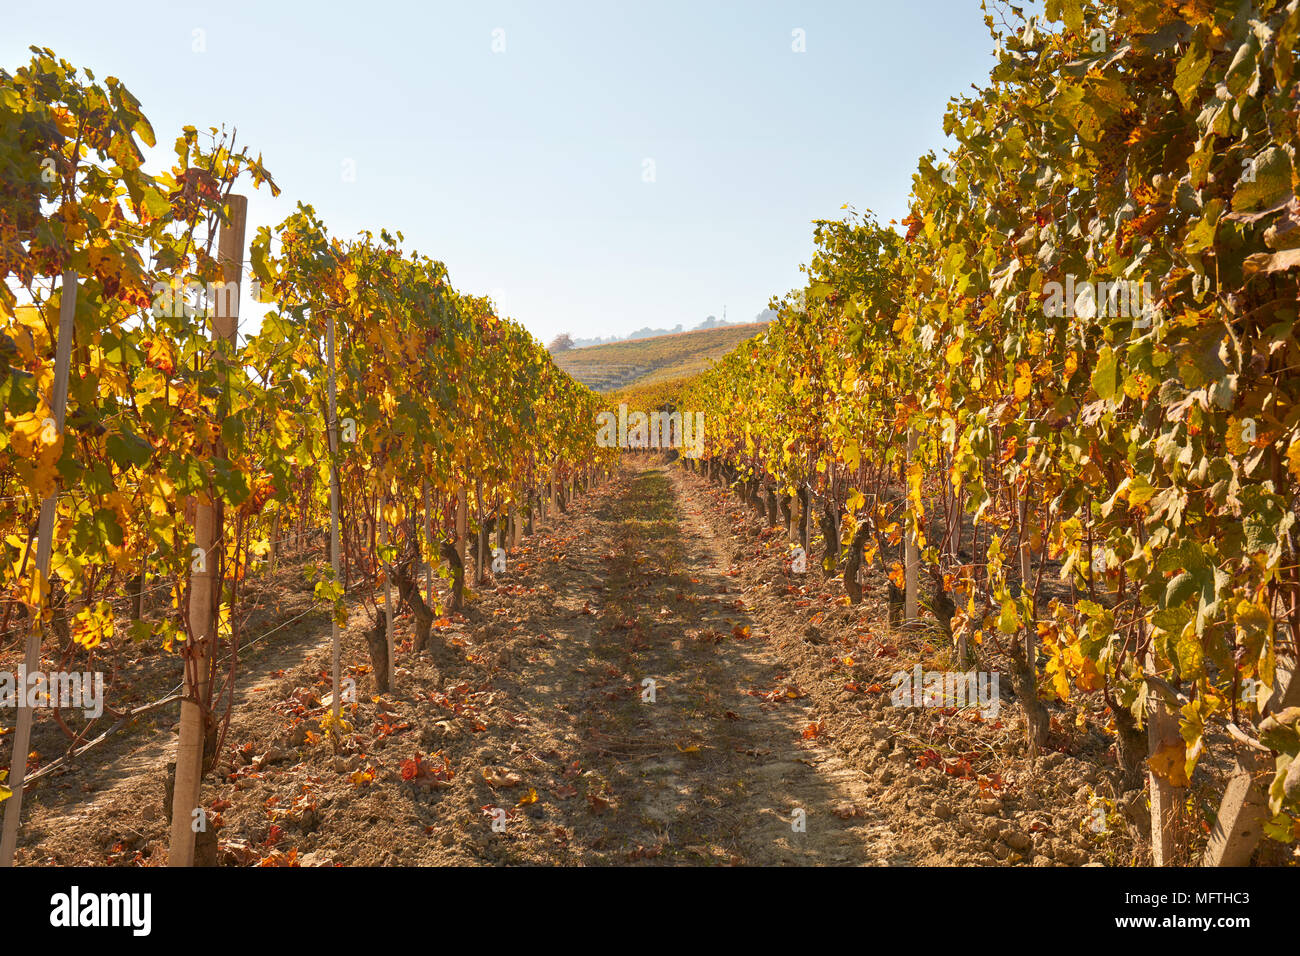 Path in the vineyard in autumn with yellow leaves in a sunny day, vanishing point - Stock Image